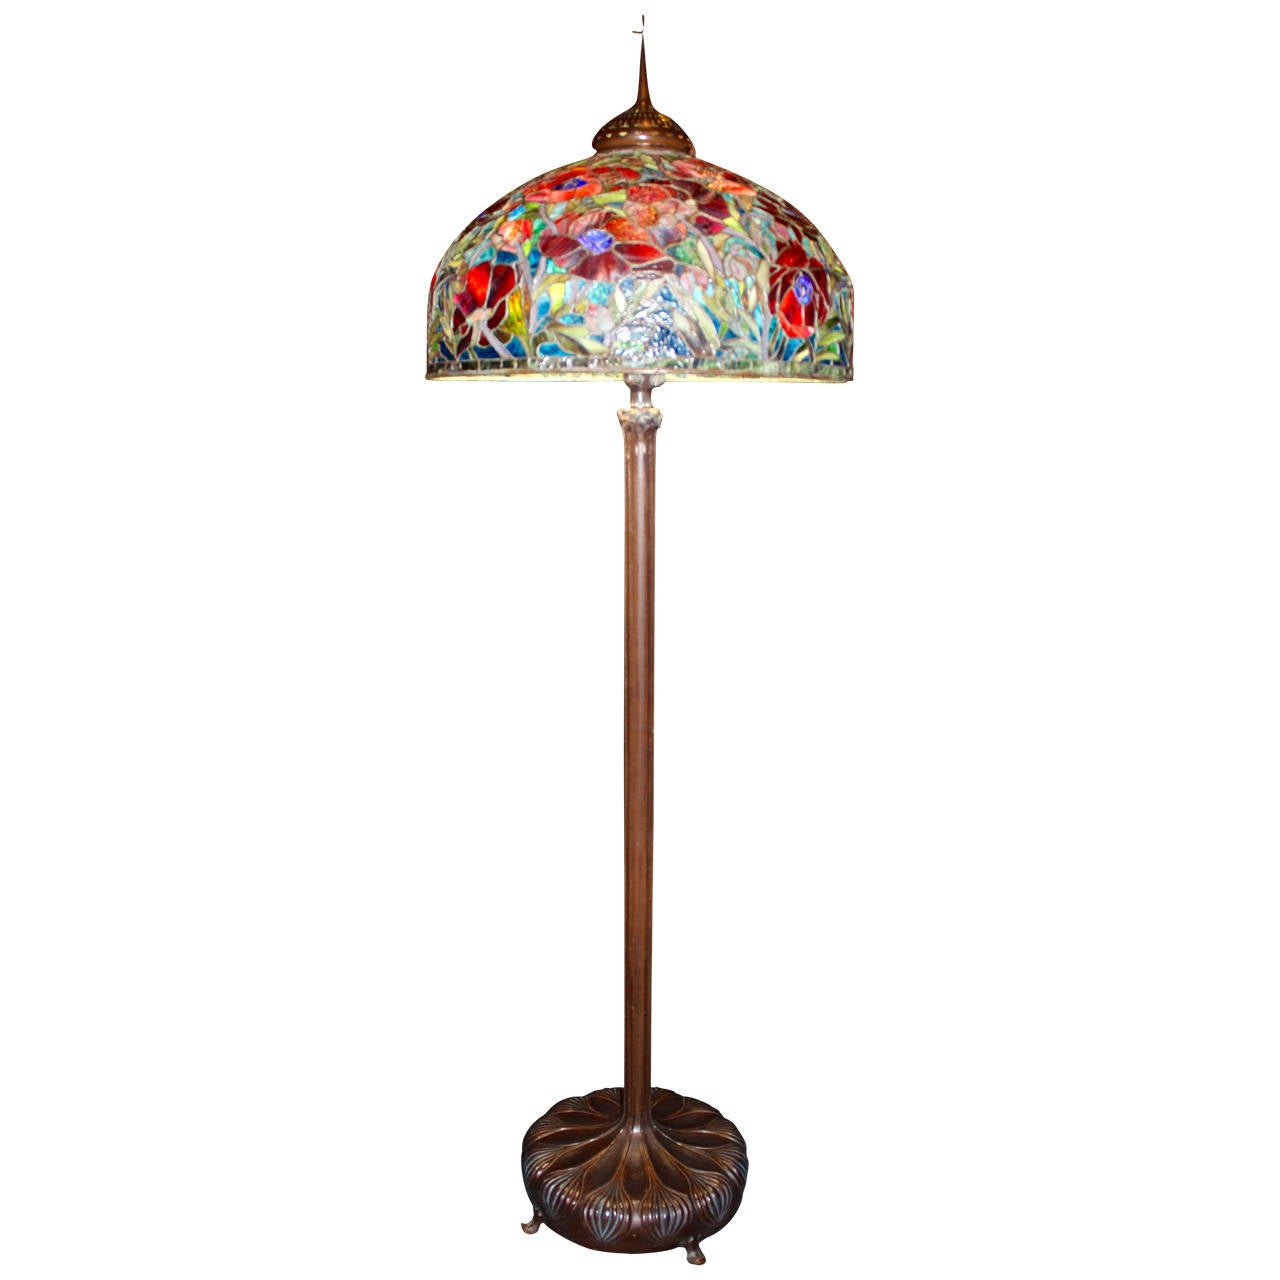 Oriental poppy tiffany style floor lamp for sale at 1stdibs oriental poppy tiffany style floor lamp 1 aloadofball Image collections